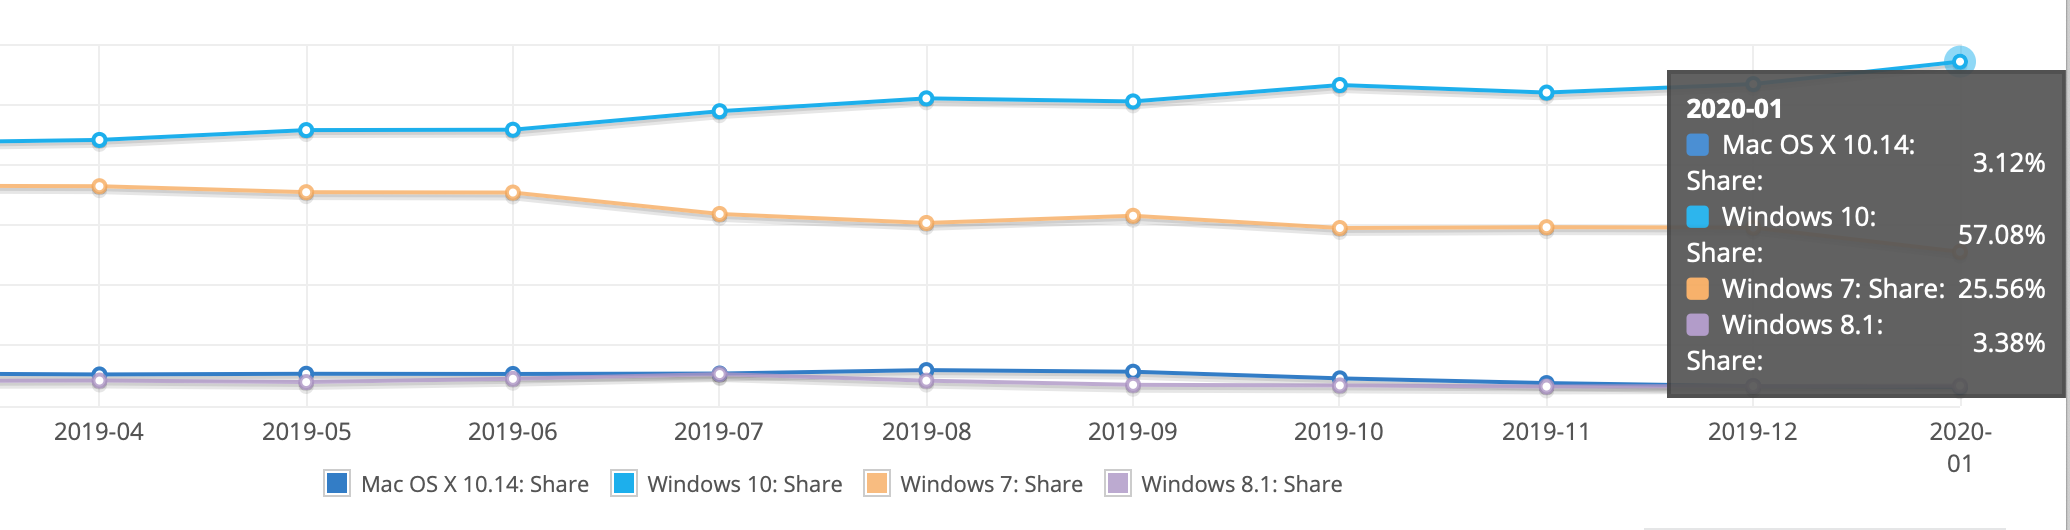 windows 10 windows 7 market share